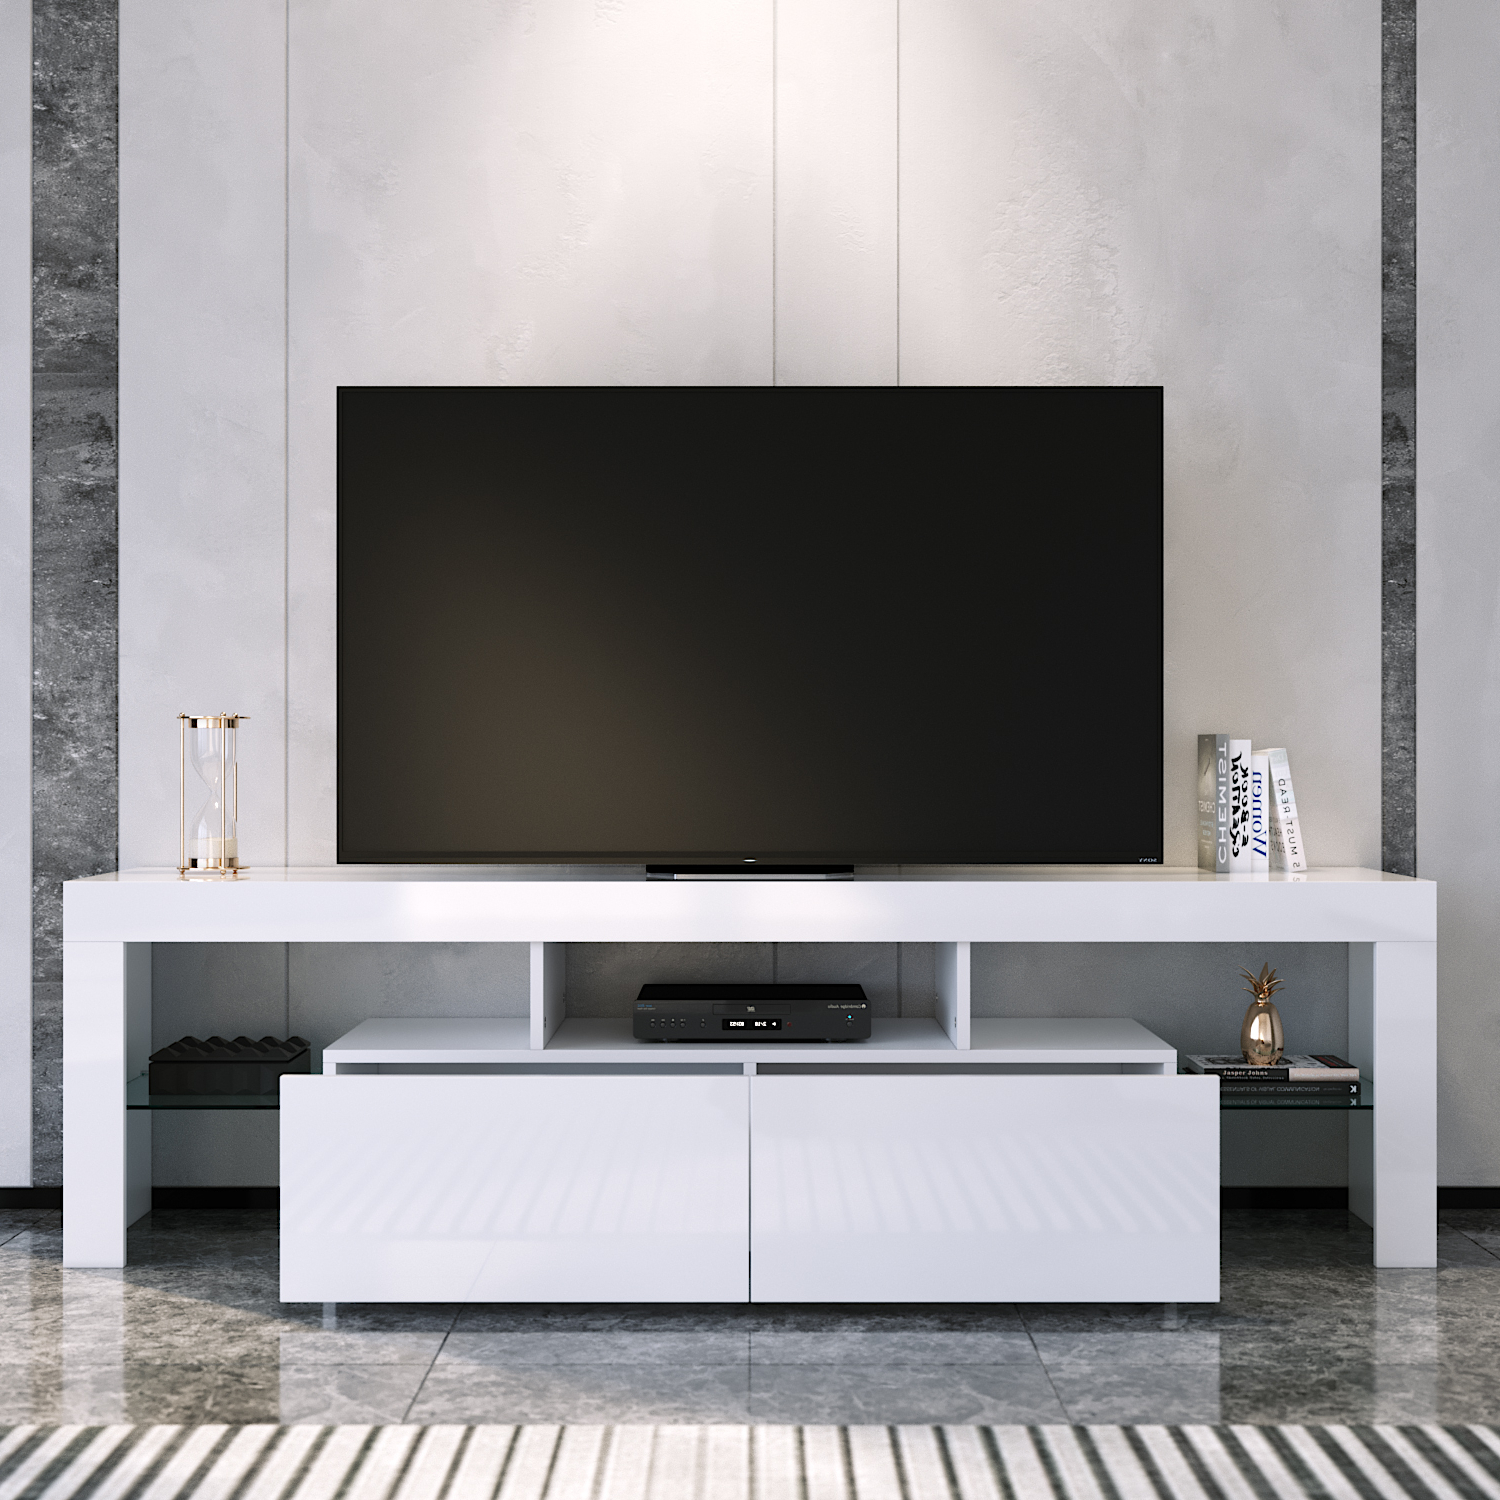 Modern 160cm Tv Unit Stand Matt Body & High Gloss Doors For 57'' Led Tv Stands With Rgb Led Light And Glass Shelves (View 10 of 20)